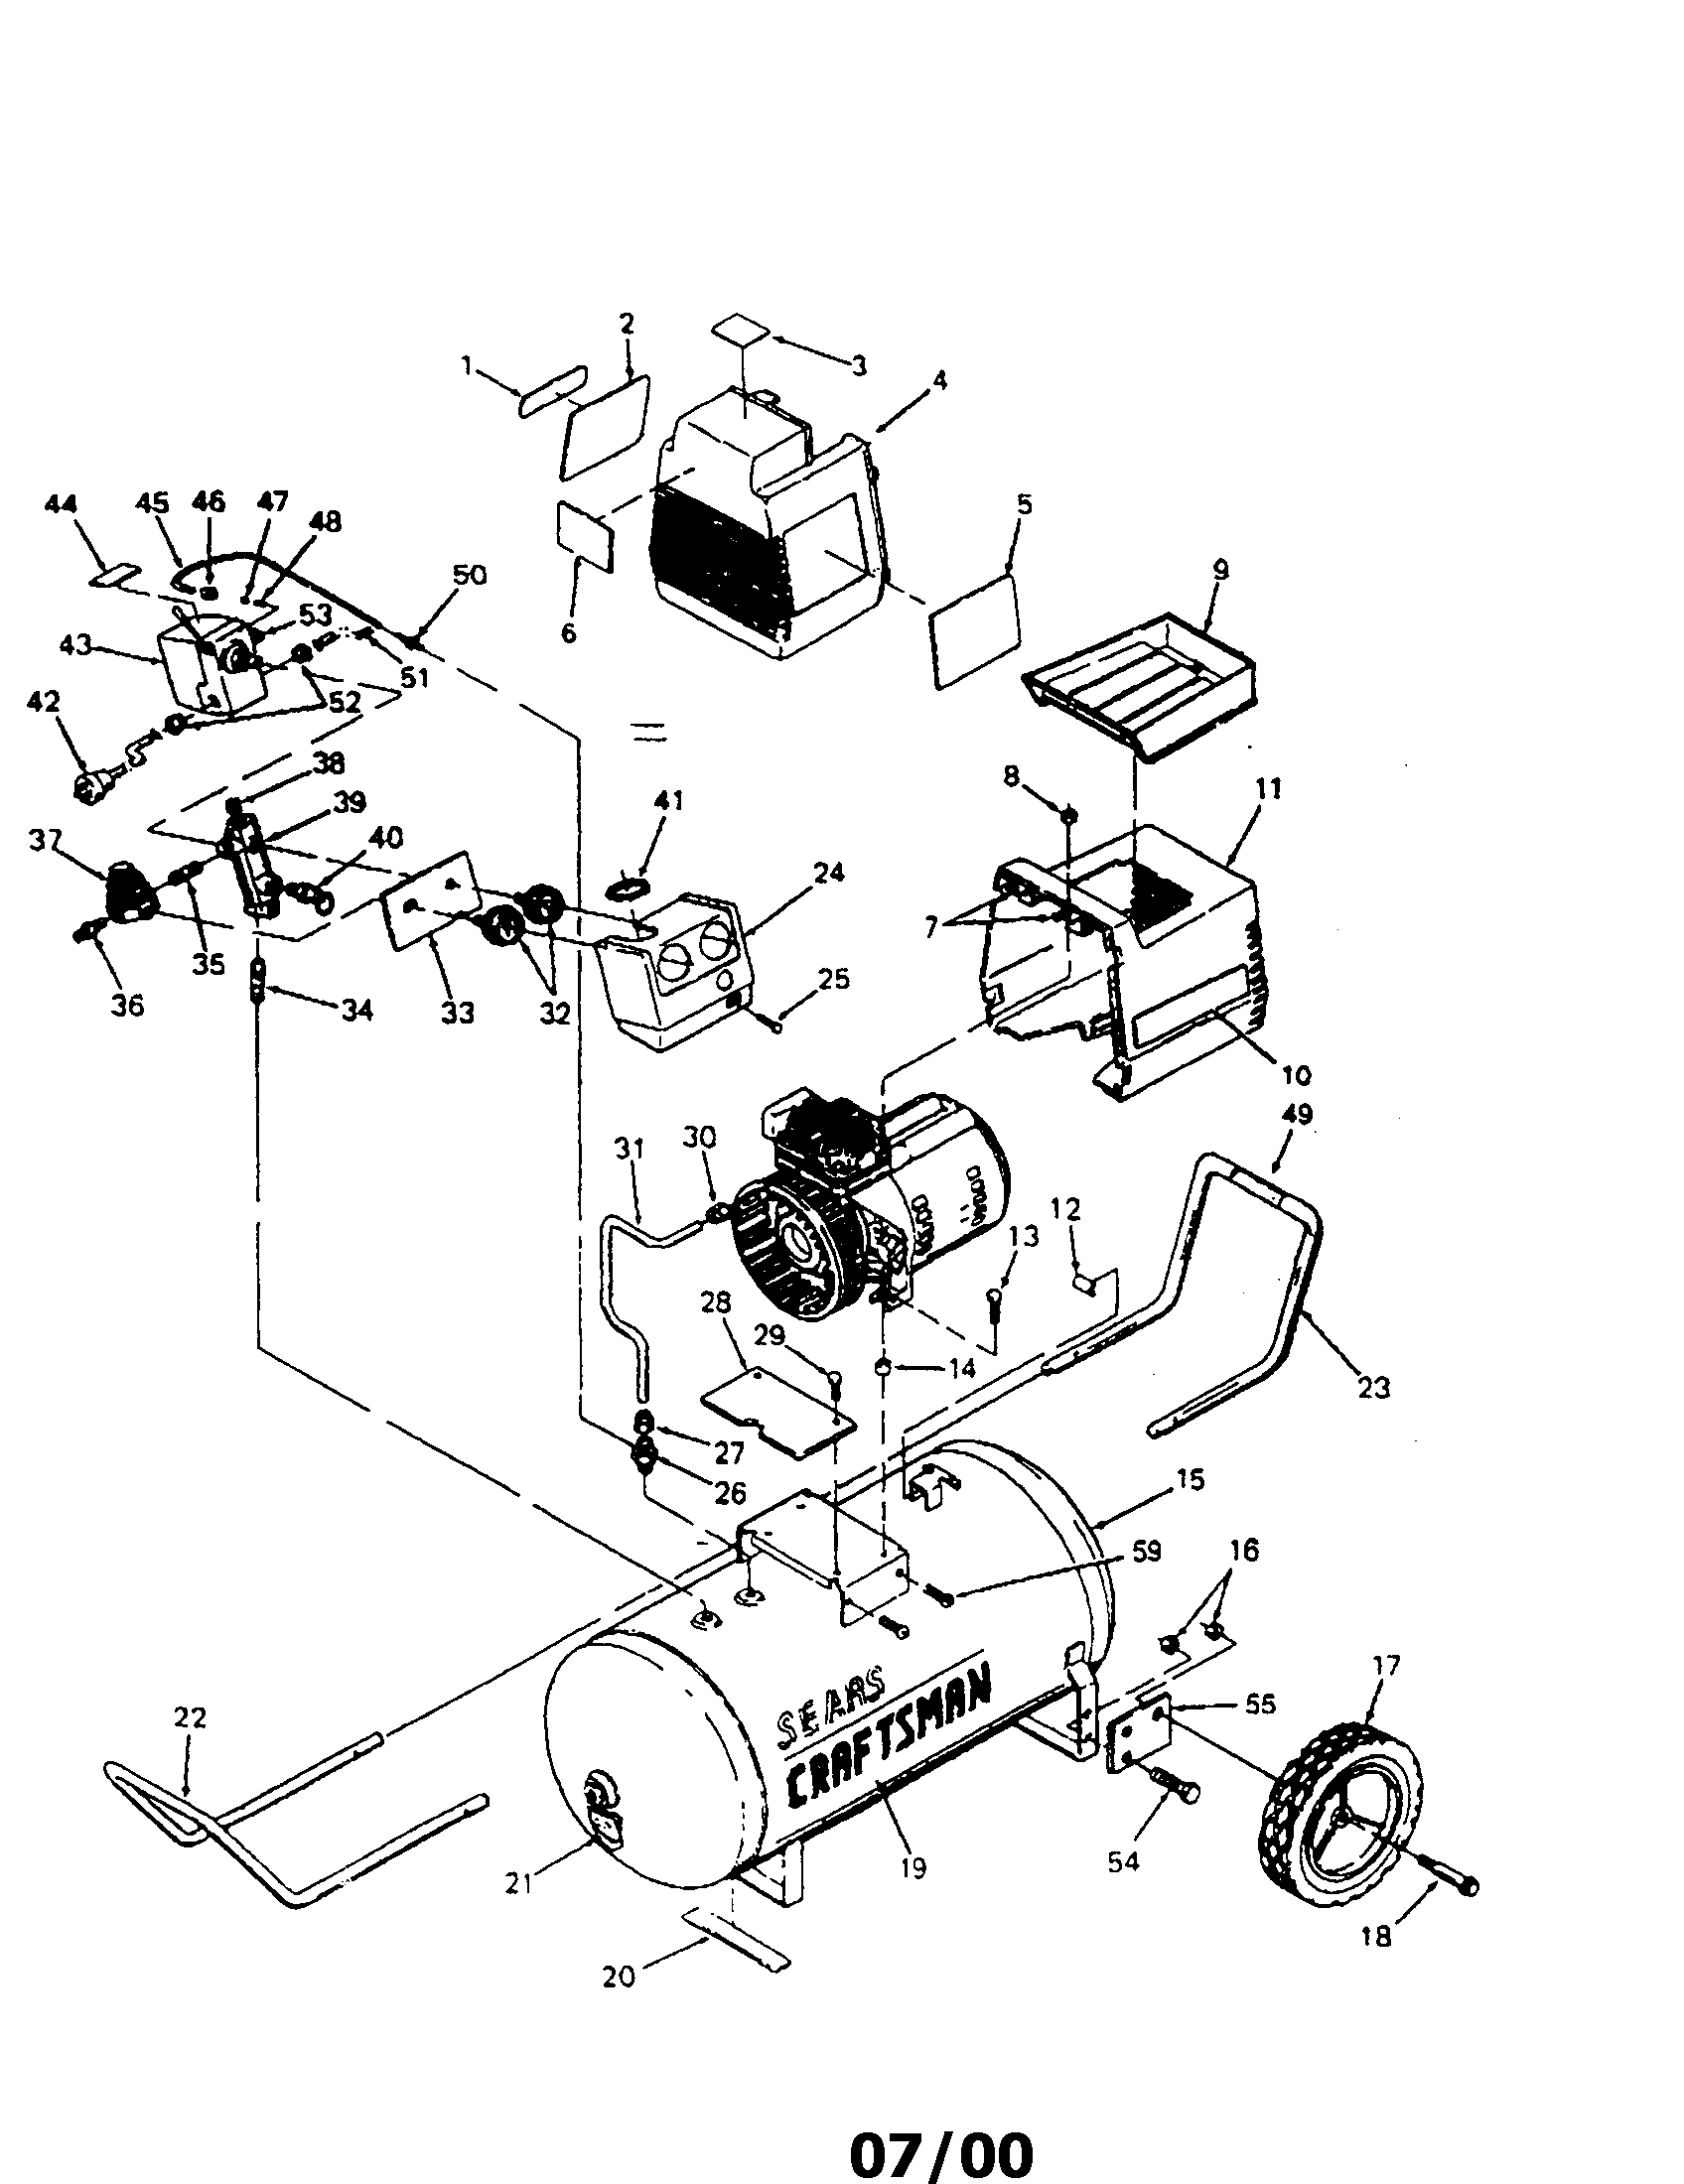 919.153331_craftsman_compressor_parts sears craftsman 919 153331 air compressor parts sears 1 hp air compressor wiring diagram at crackthecode.co